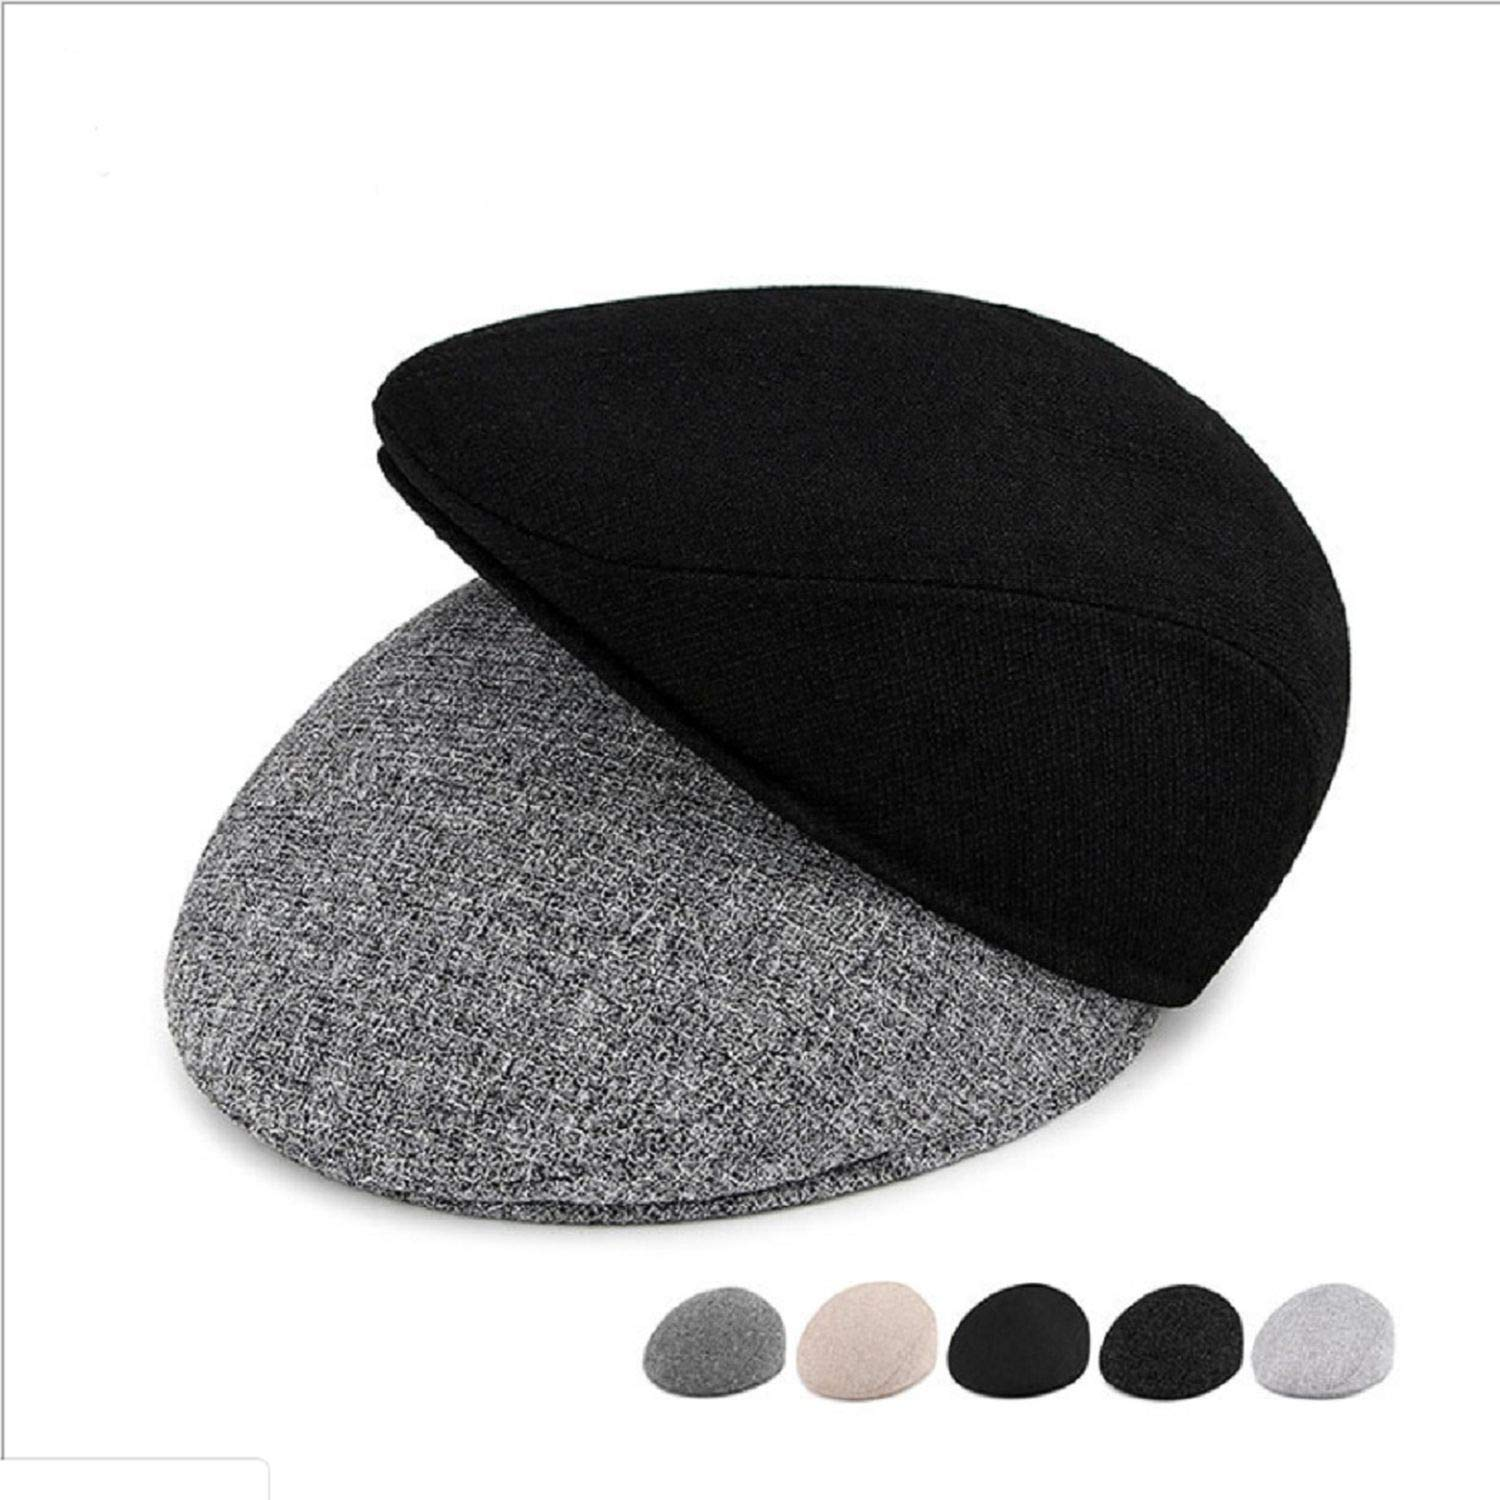 Summer Beret Caps Men Women Cabbie Gatsby Linen Outdoor Hats Vintage News Boy Sun Hat Unisex Duckbill